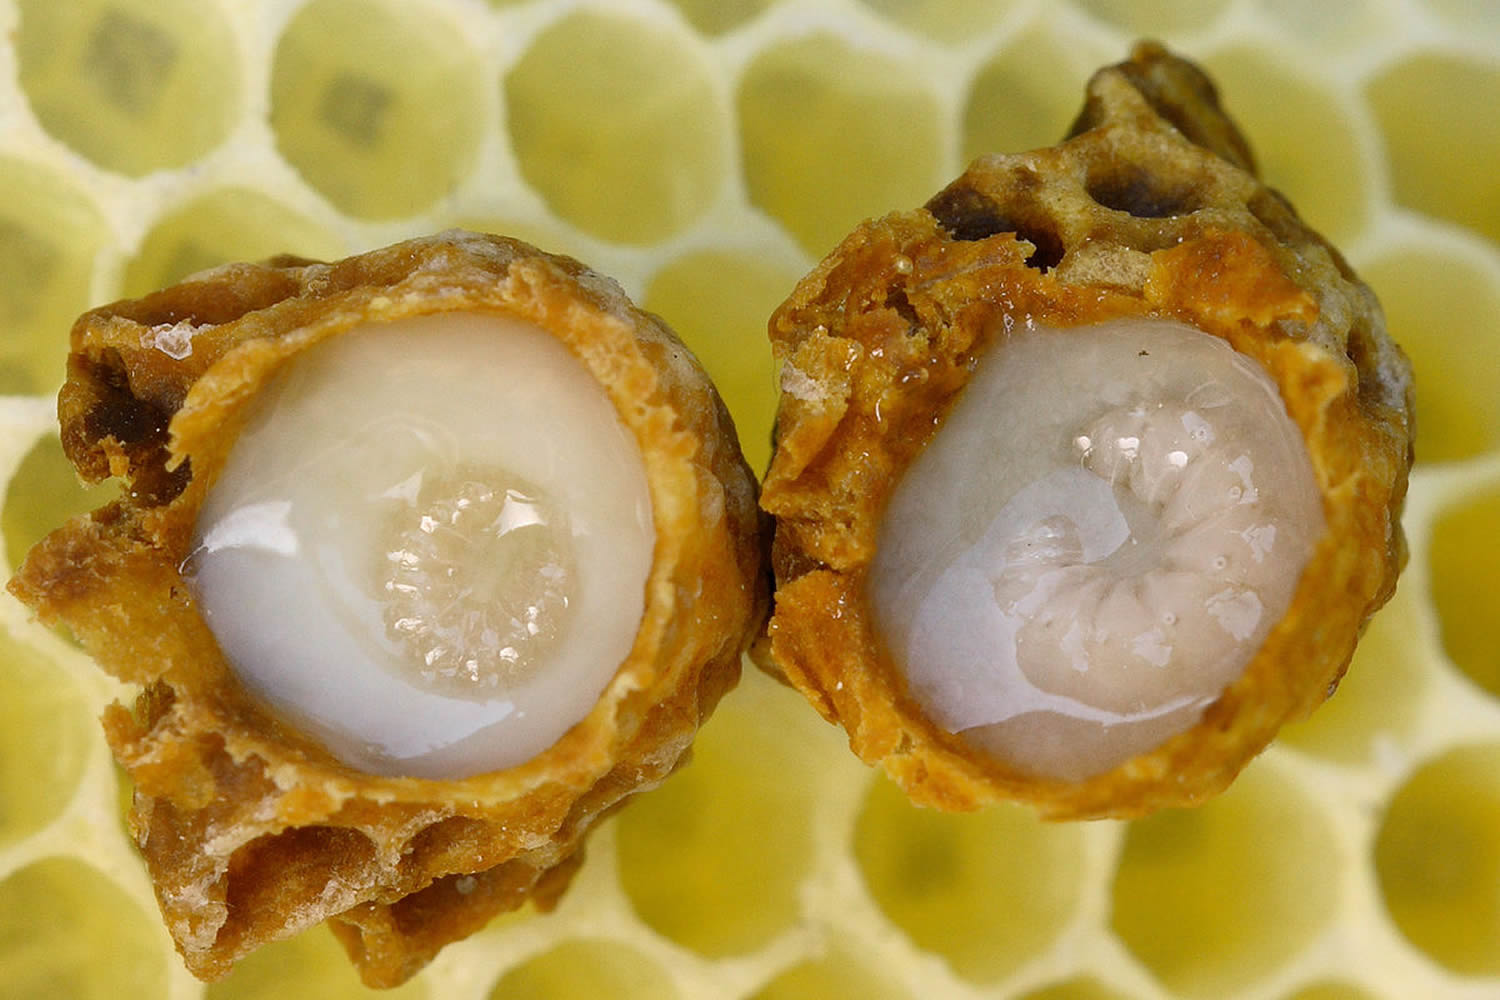 royal jelly surrounding queen bee larvae